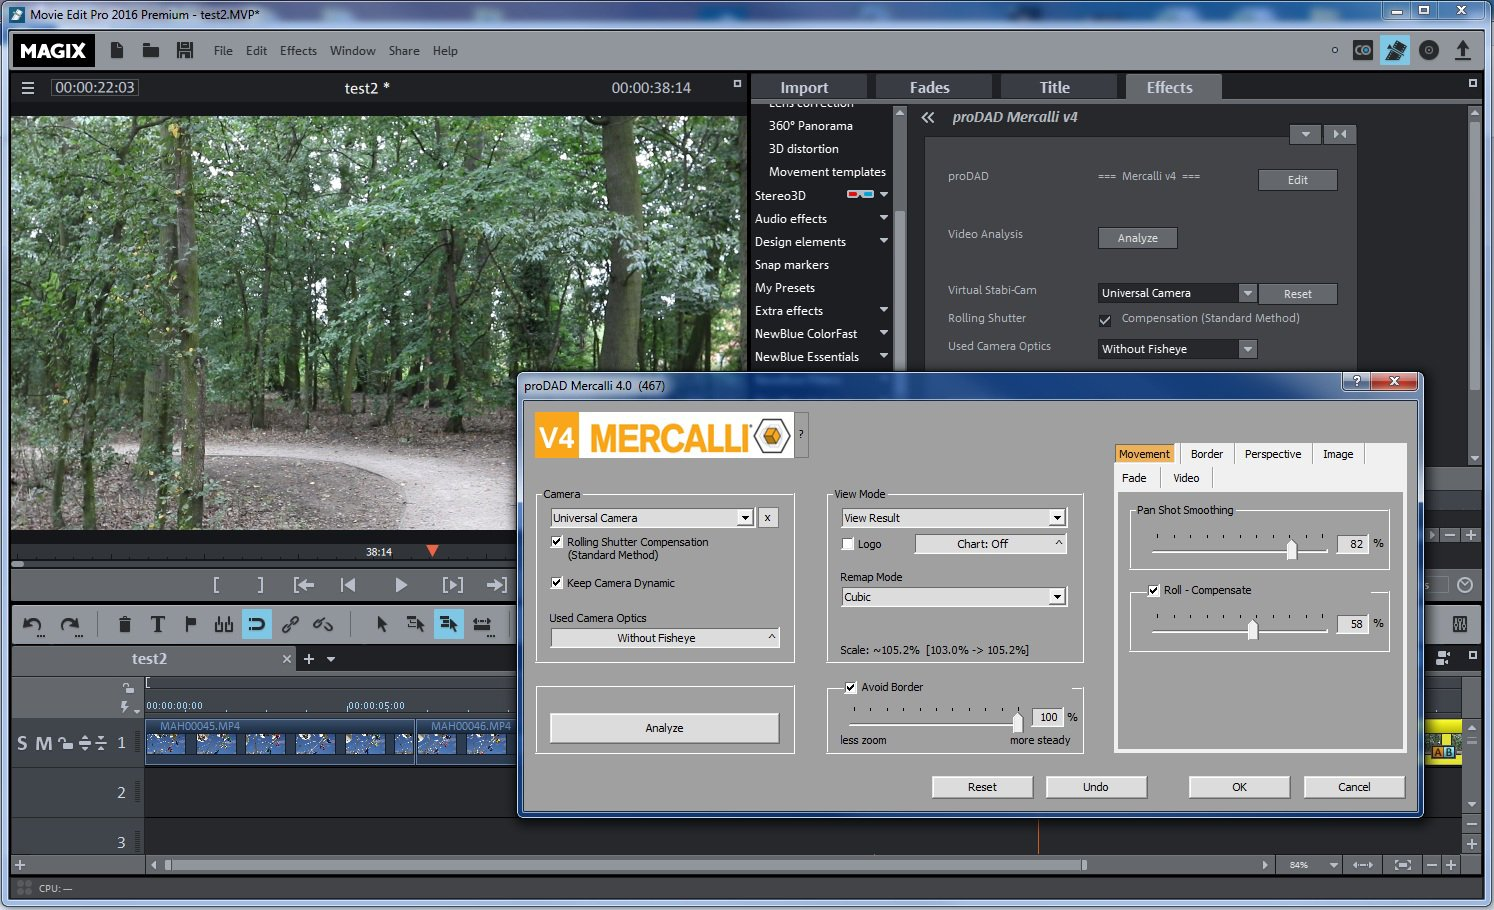 Magix Movie Edit Pro 2016 Premium Review Great Video Stabilisation